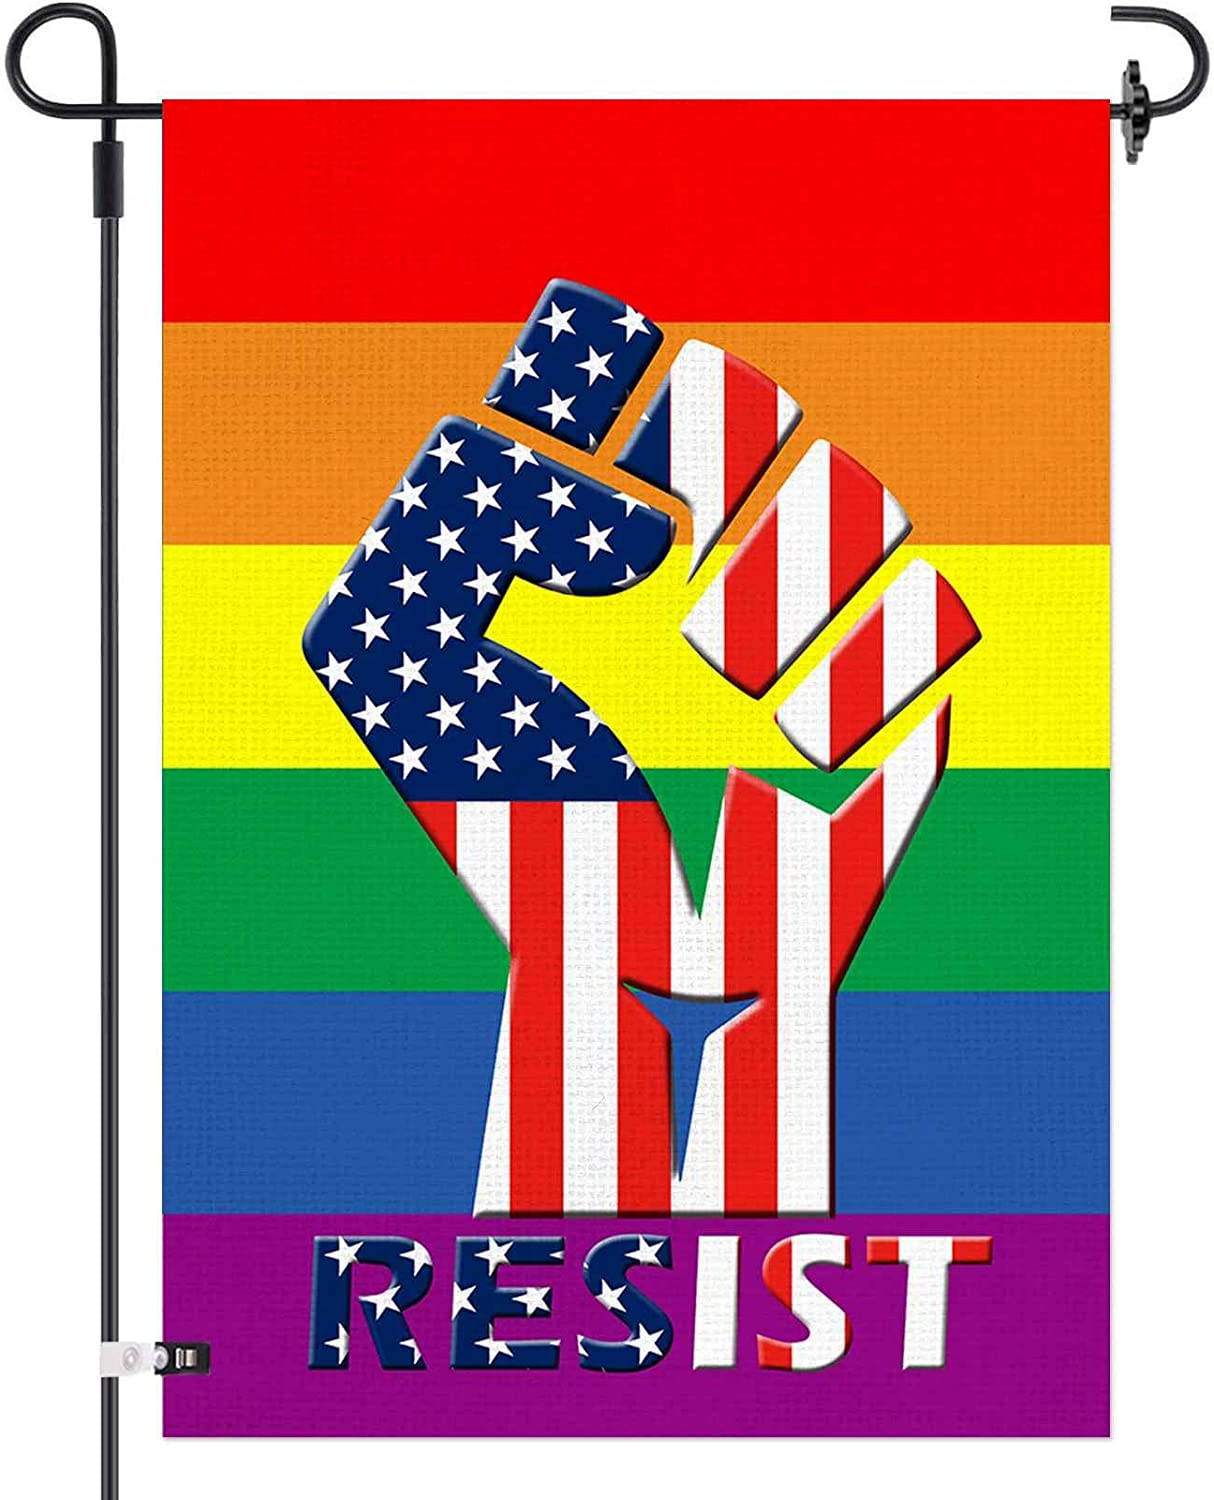 AOKDEER Pride Flag, Double Sided Rainbow Gay Pride American Burlap Garden Flag, Respect Love is Love LGBT Peace Yard House Flag, Vertical Small Banner Decorations 12.5x18 Prime, Lesbian Pansexual Flag